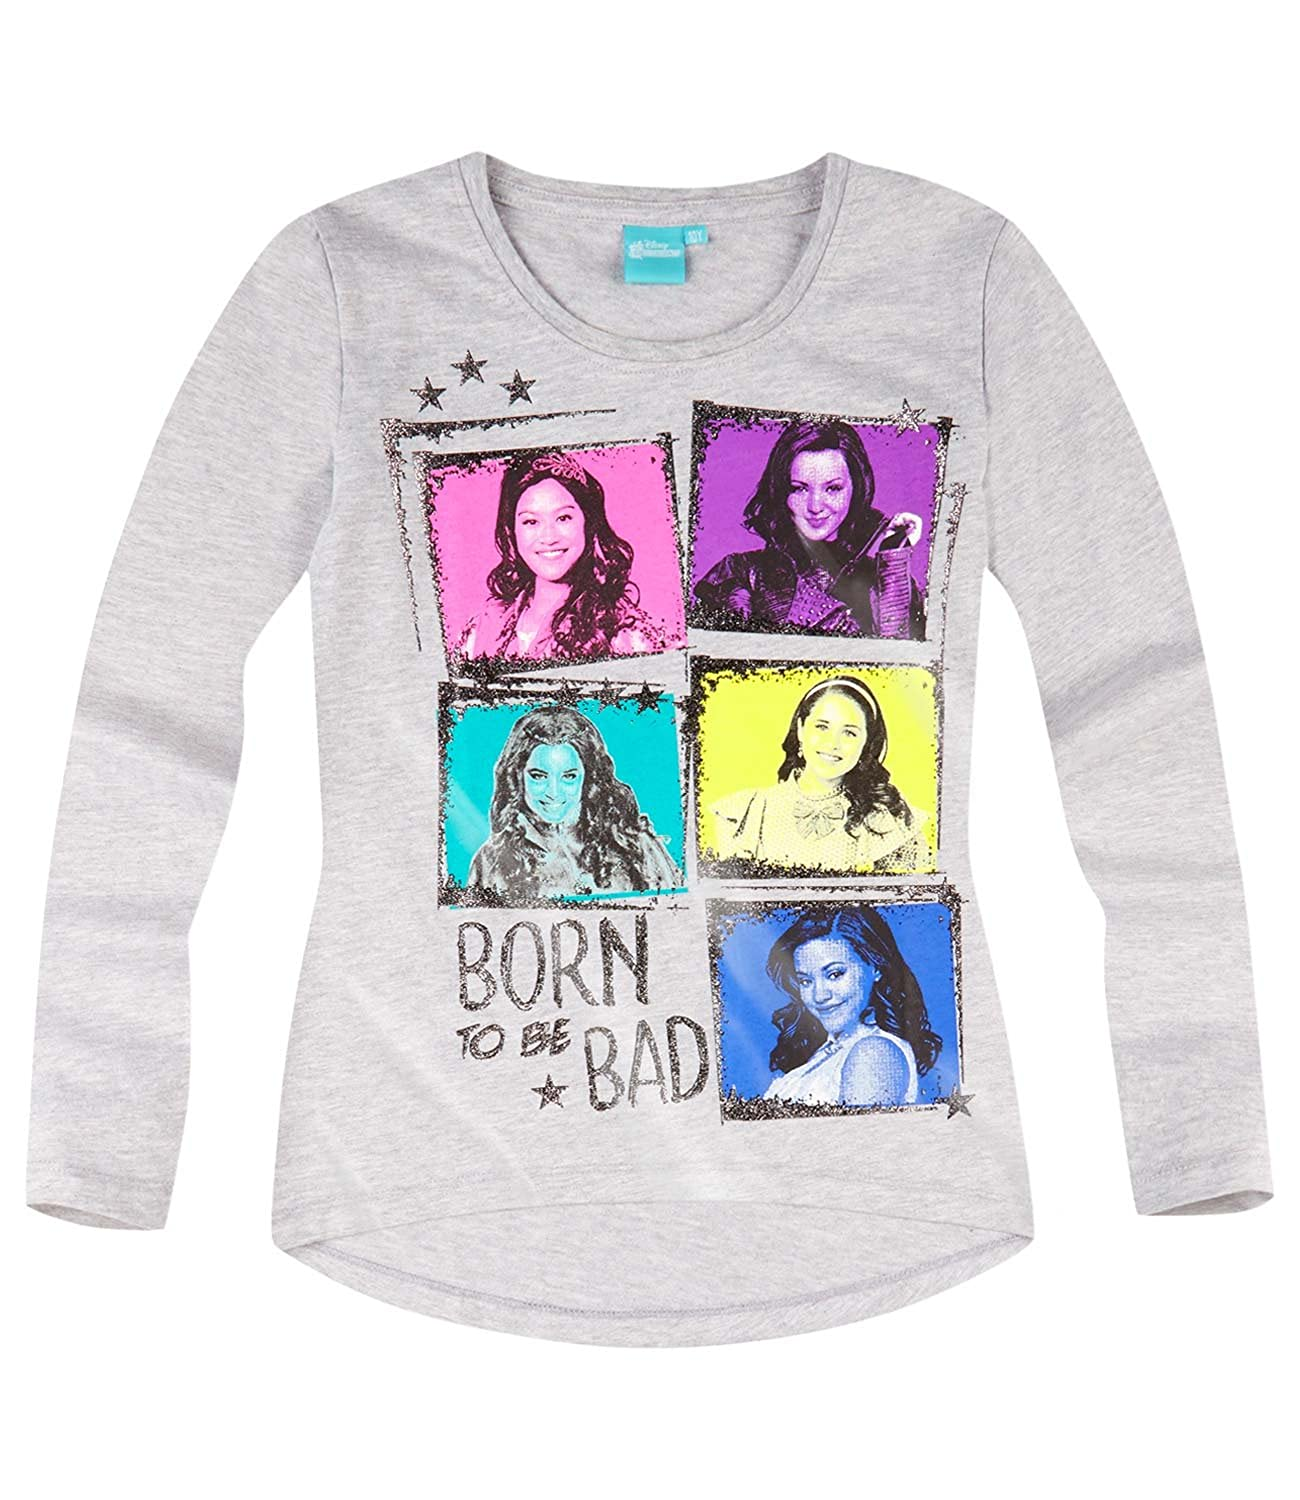 Disney Descendants Girls Long Sleeve T-Shirt 2016 Collection - Grey